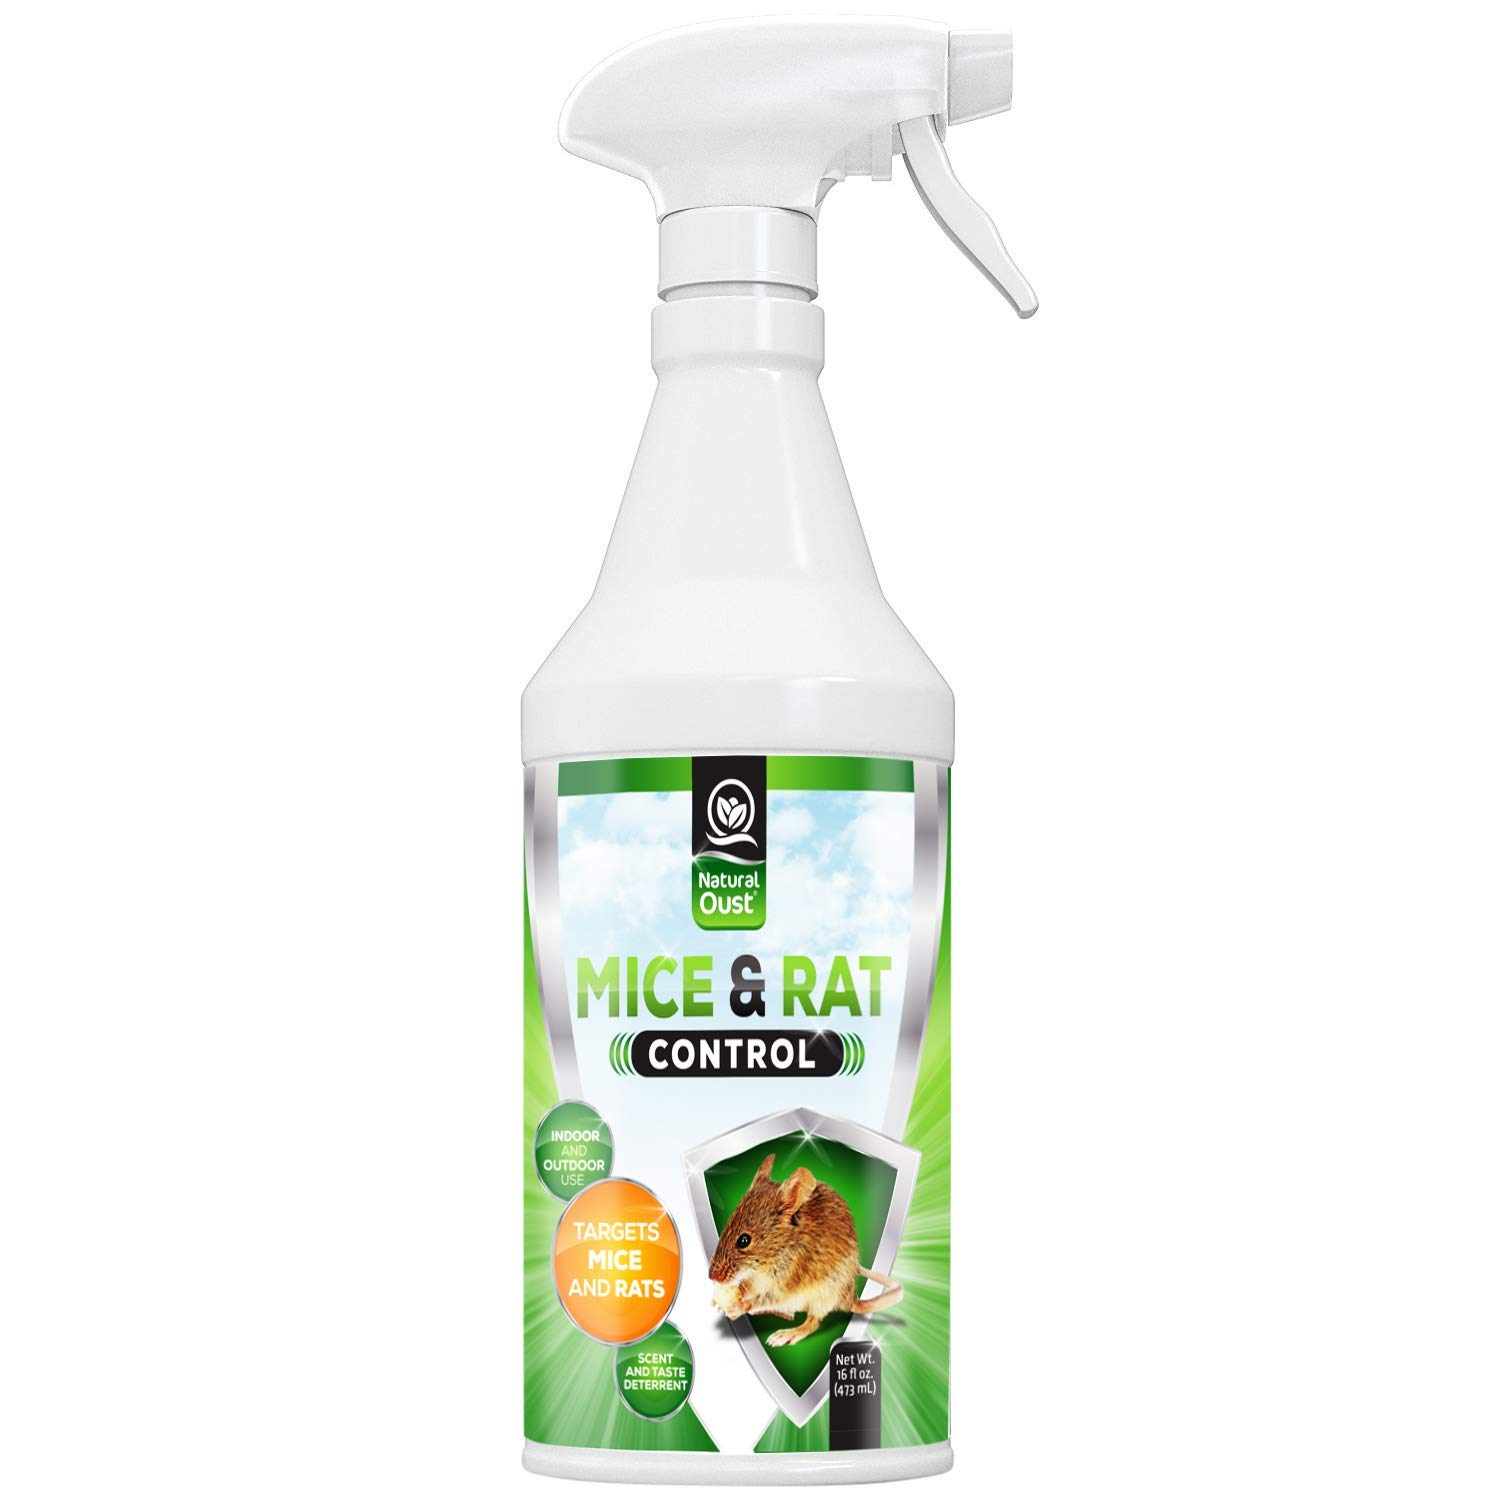 Peppermint Mice Repellent Spray - All Natural Essential Oil Mouse Formula - Deters All Types of Mice, Rats and Small Rodents